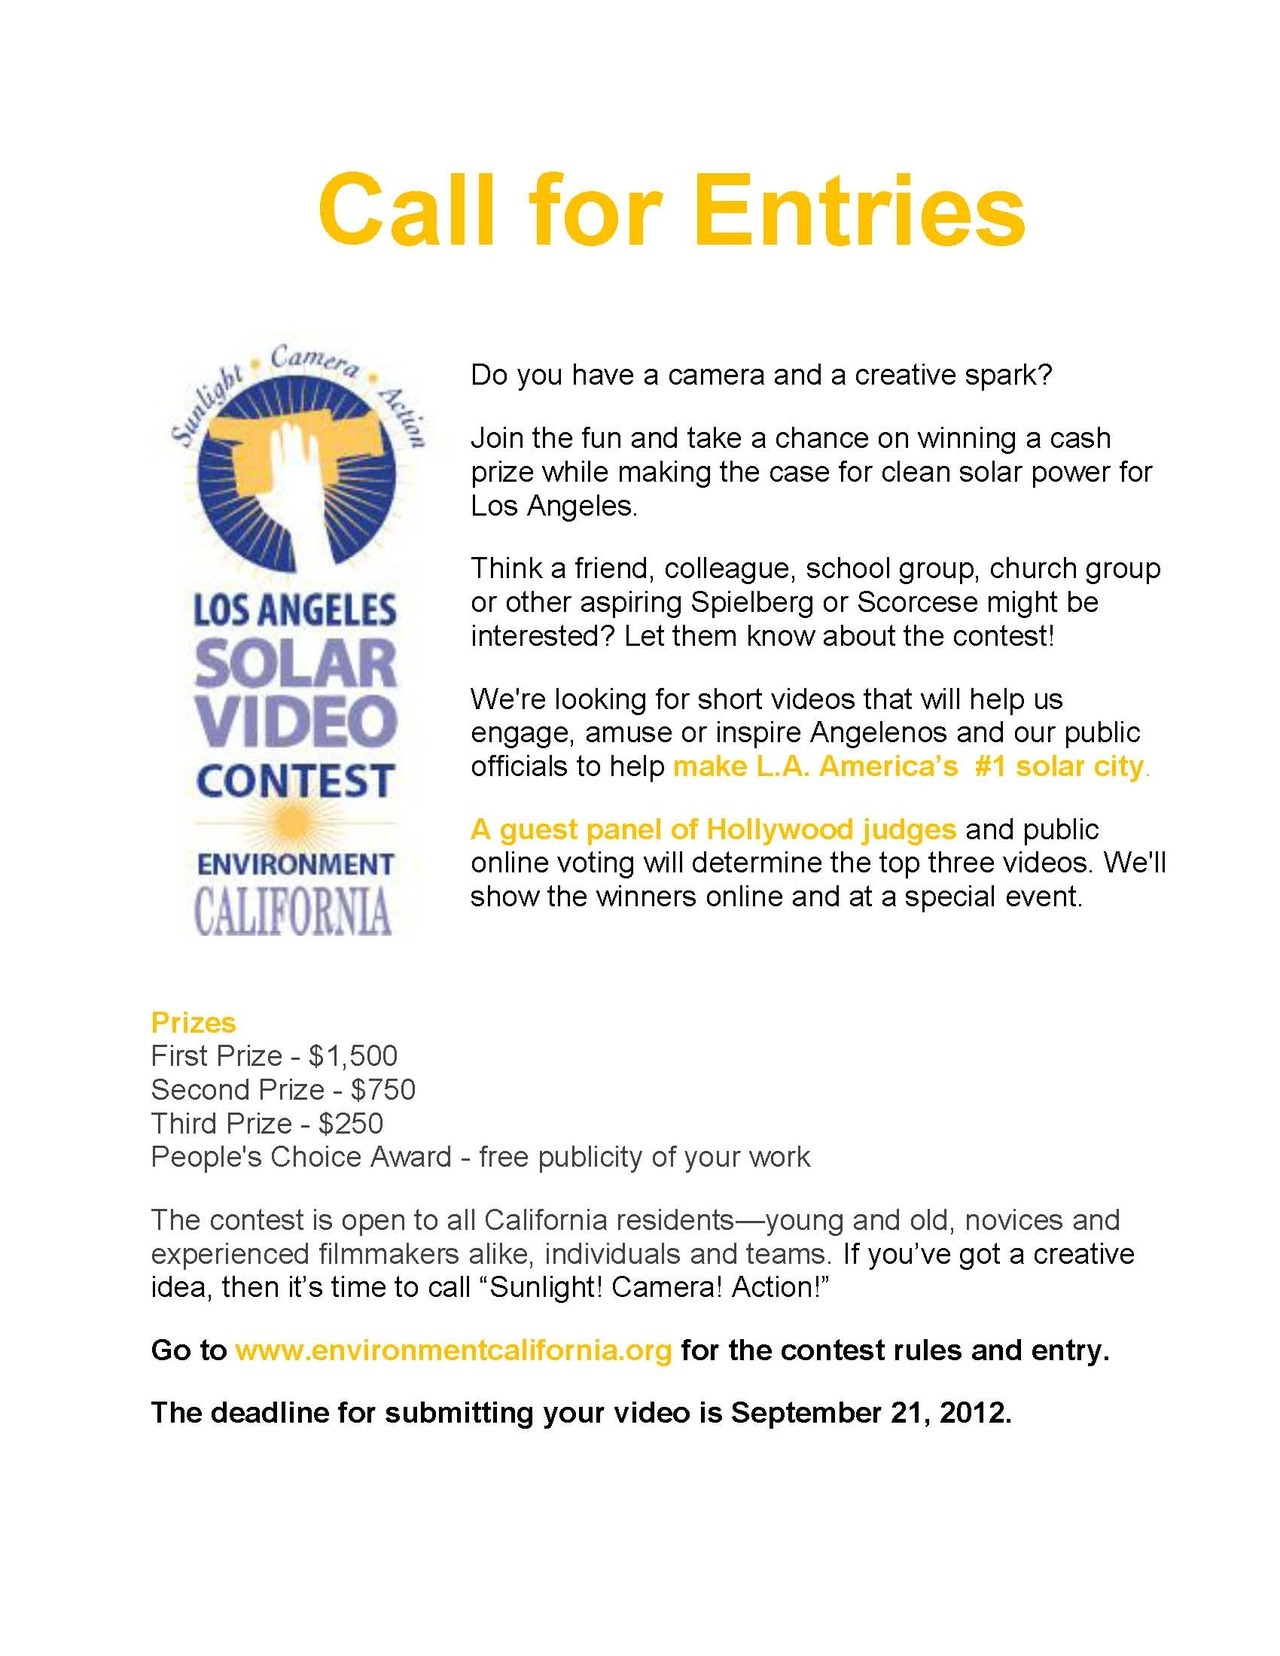 Inspire Los Angeles to go green!  Submit your film about solar power to the Los Angeles Solar Video Contest by September 21, 2012.